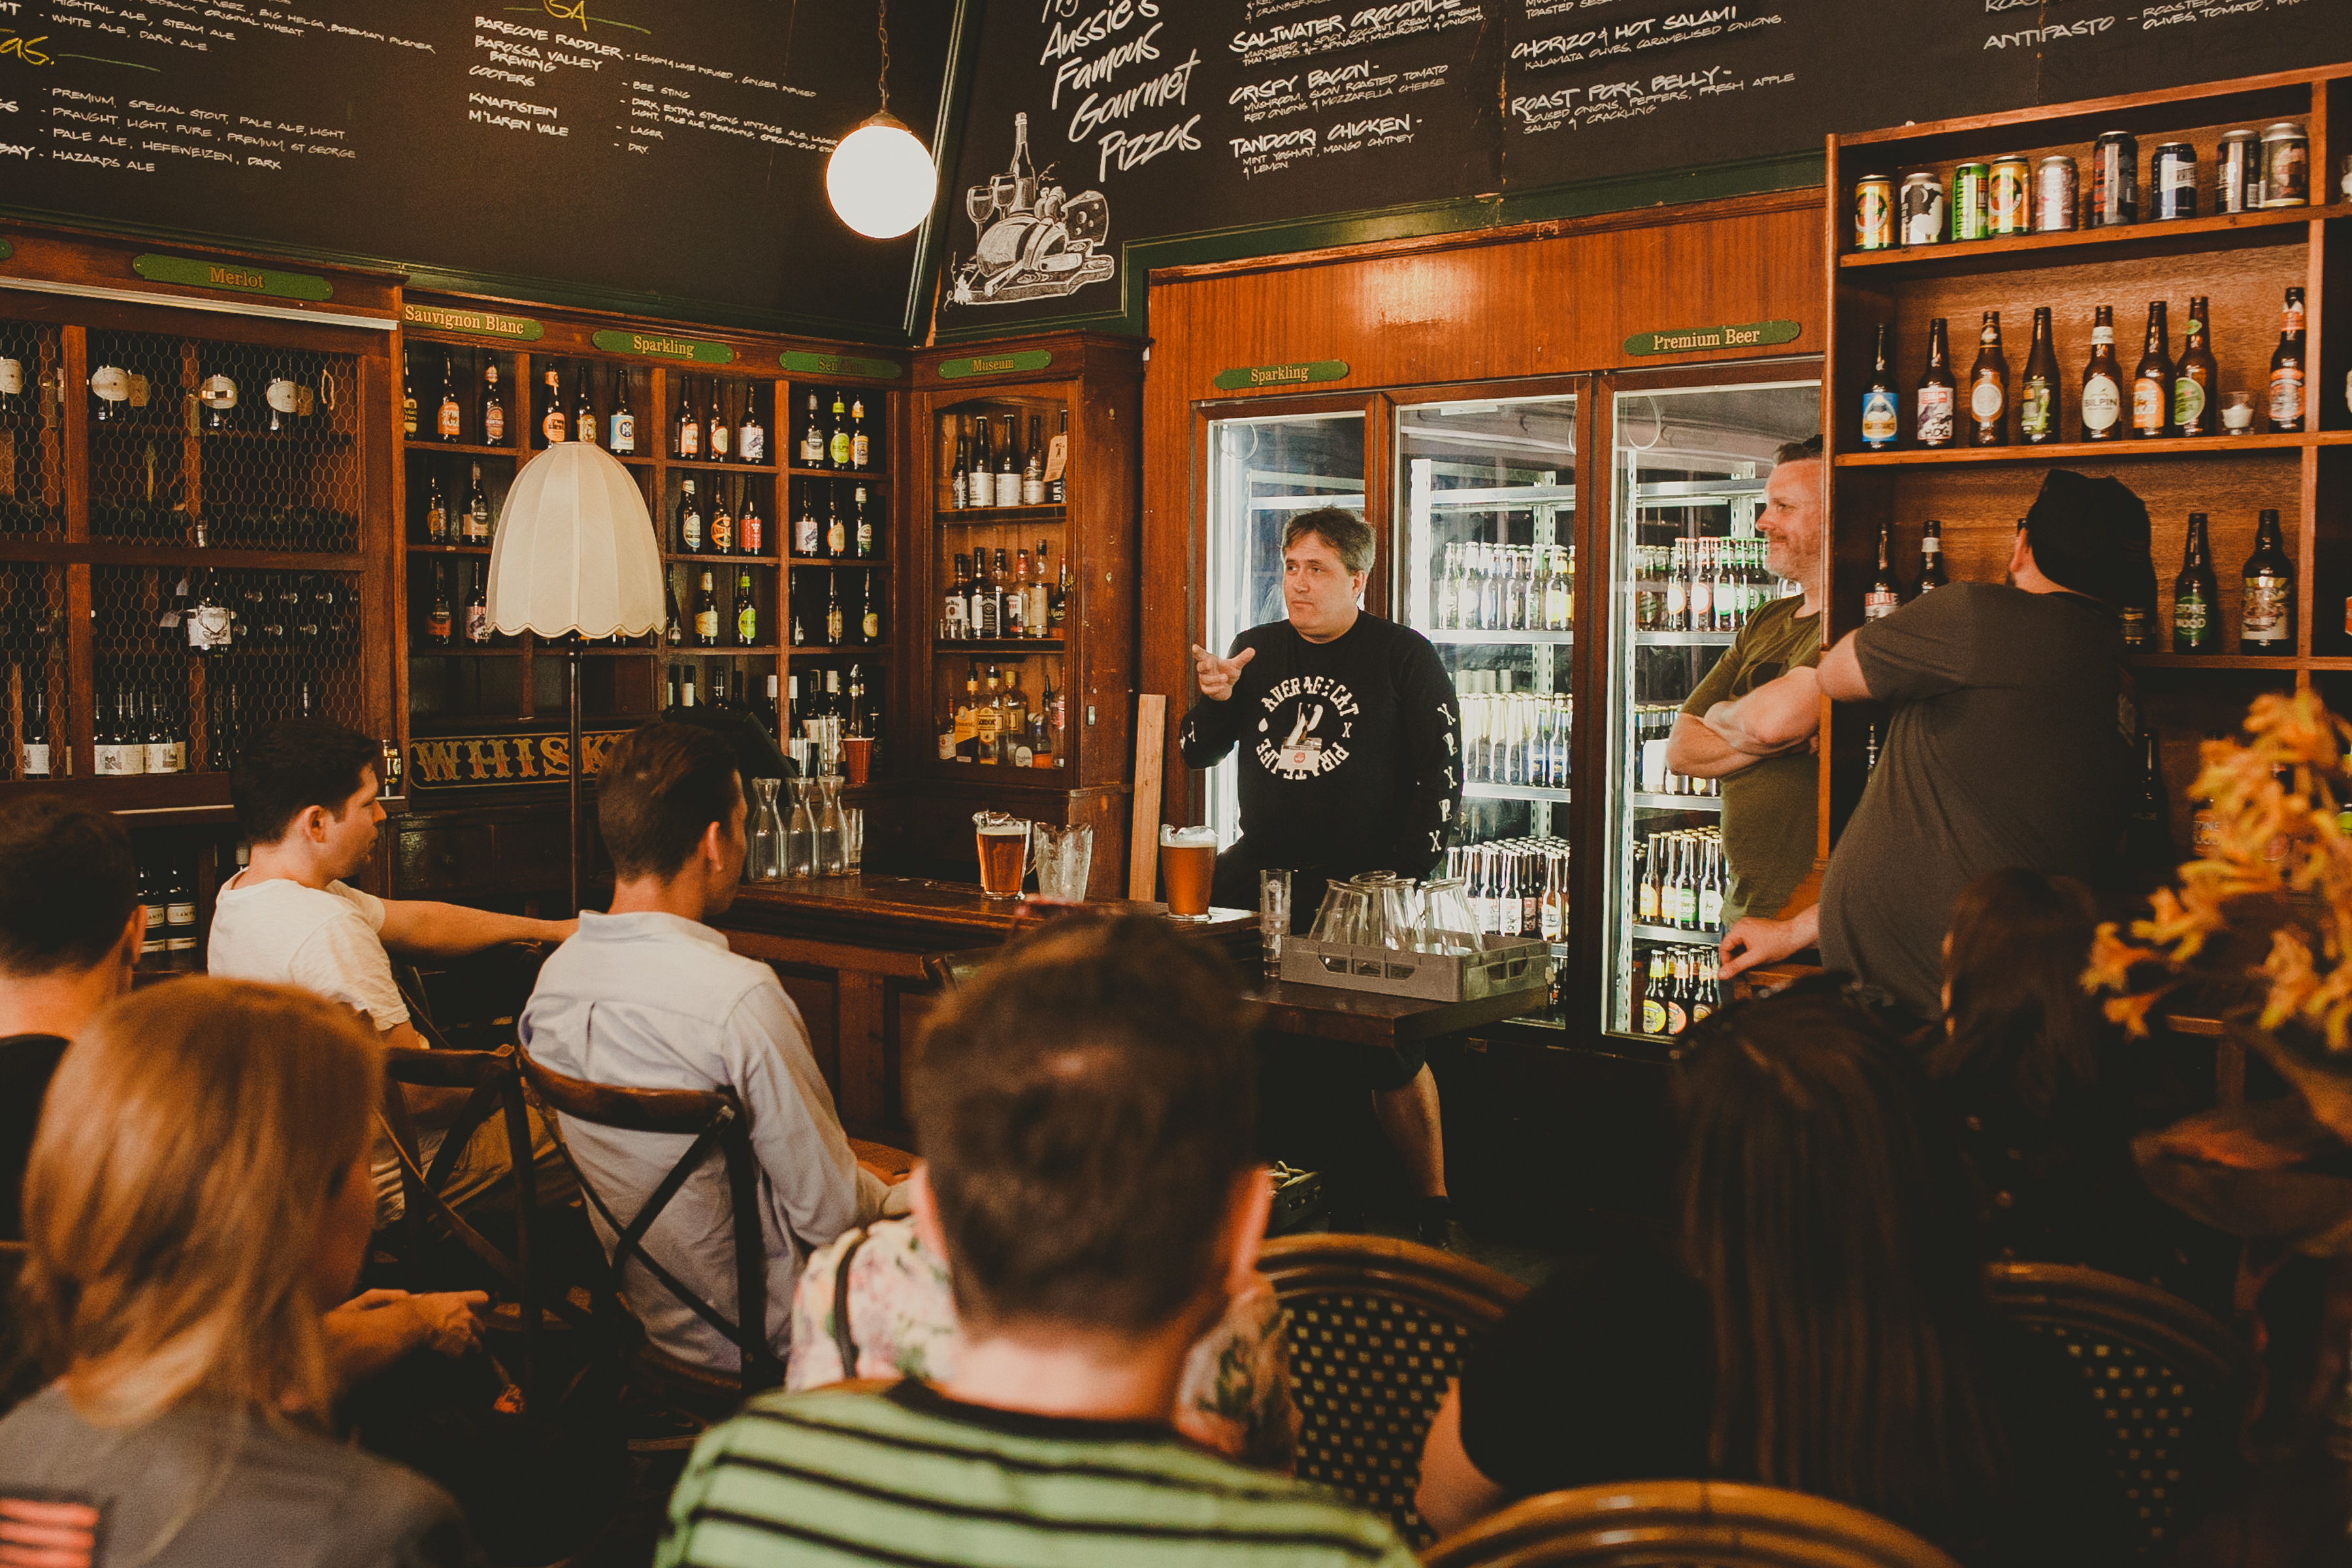 The Aussie launches Beer Club